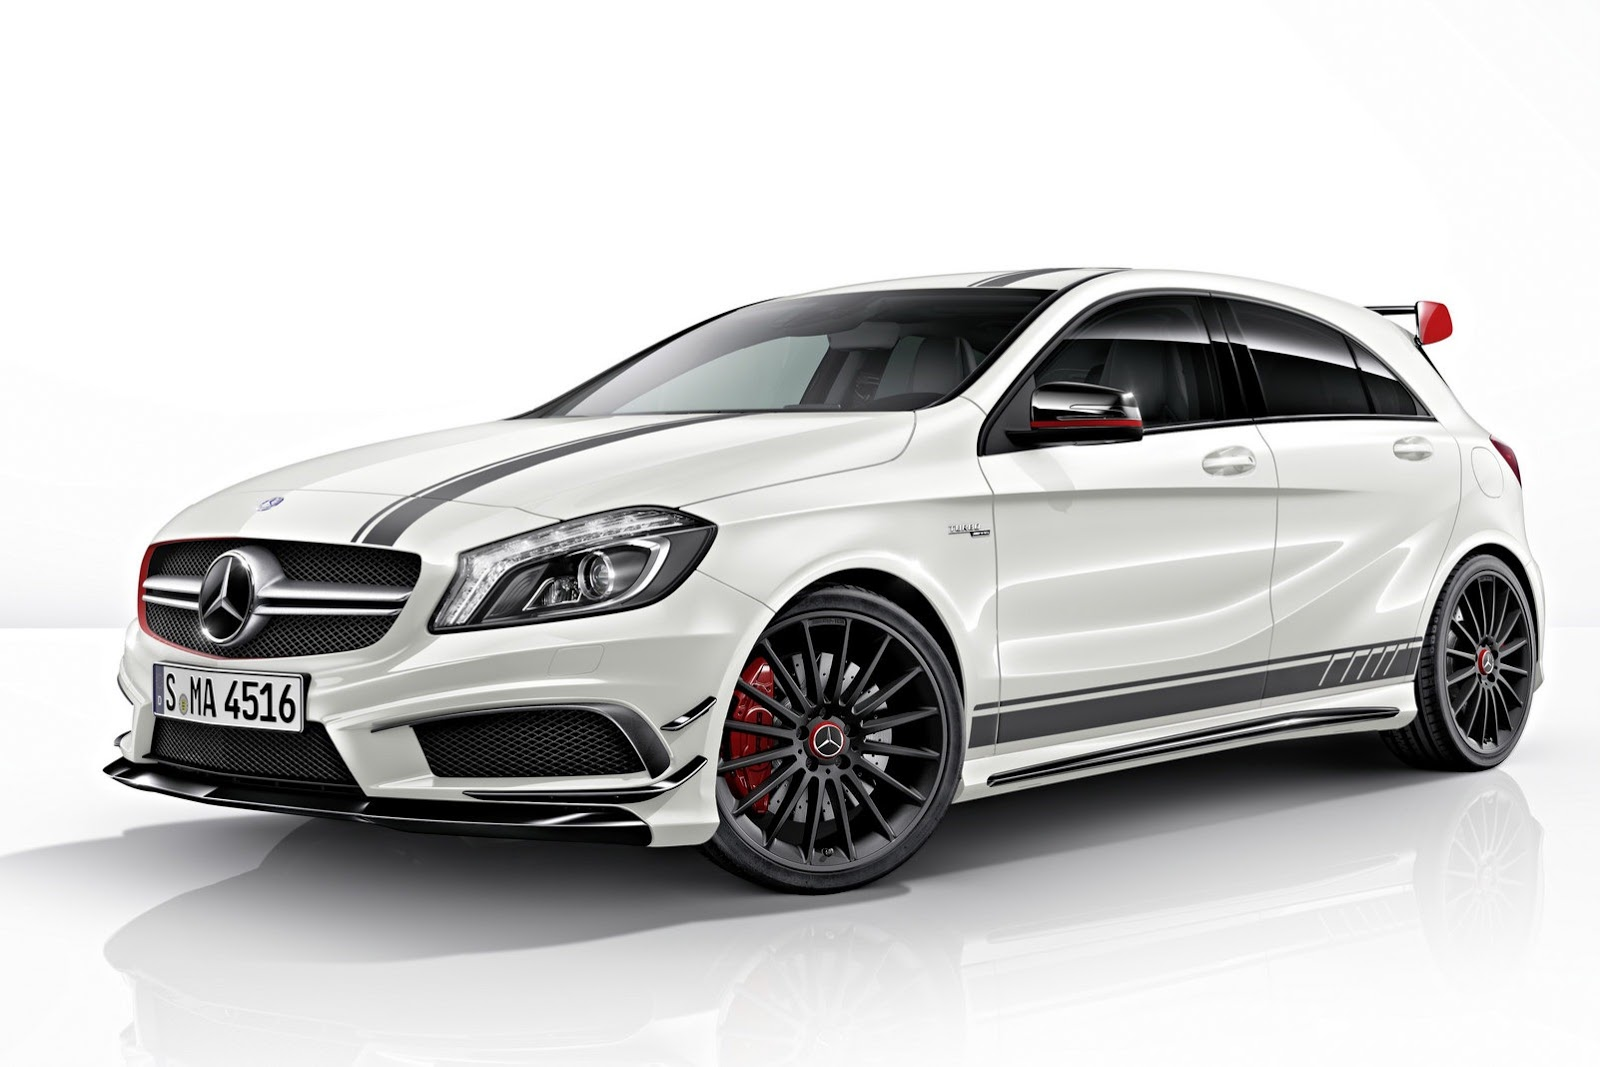 Nancys car designs new mercedes benz a45 amg edition 1 for Mercedes benz a45 amg